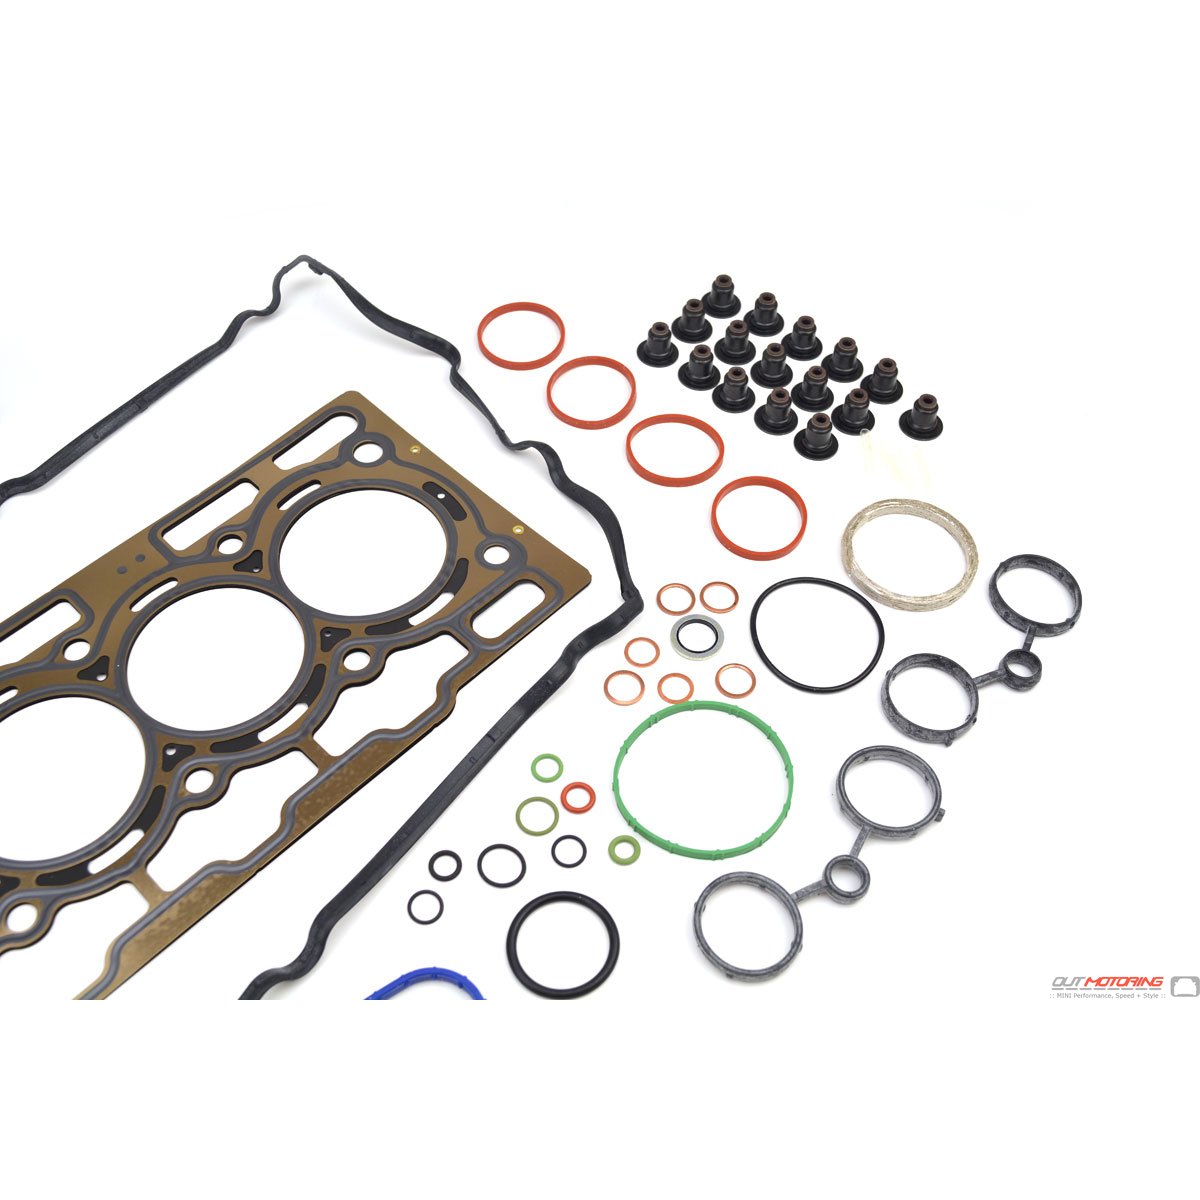 2007-2012 Engine Variable Timing Unit Gasket ELWIS 7015419 Fits Mini Cooper L4